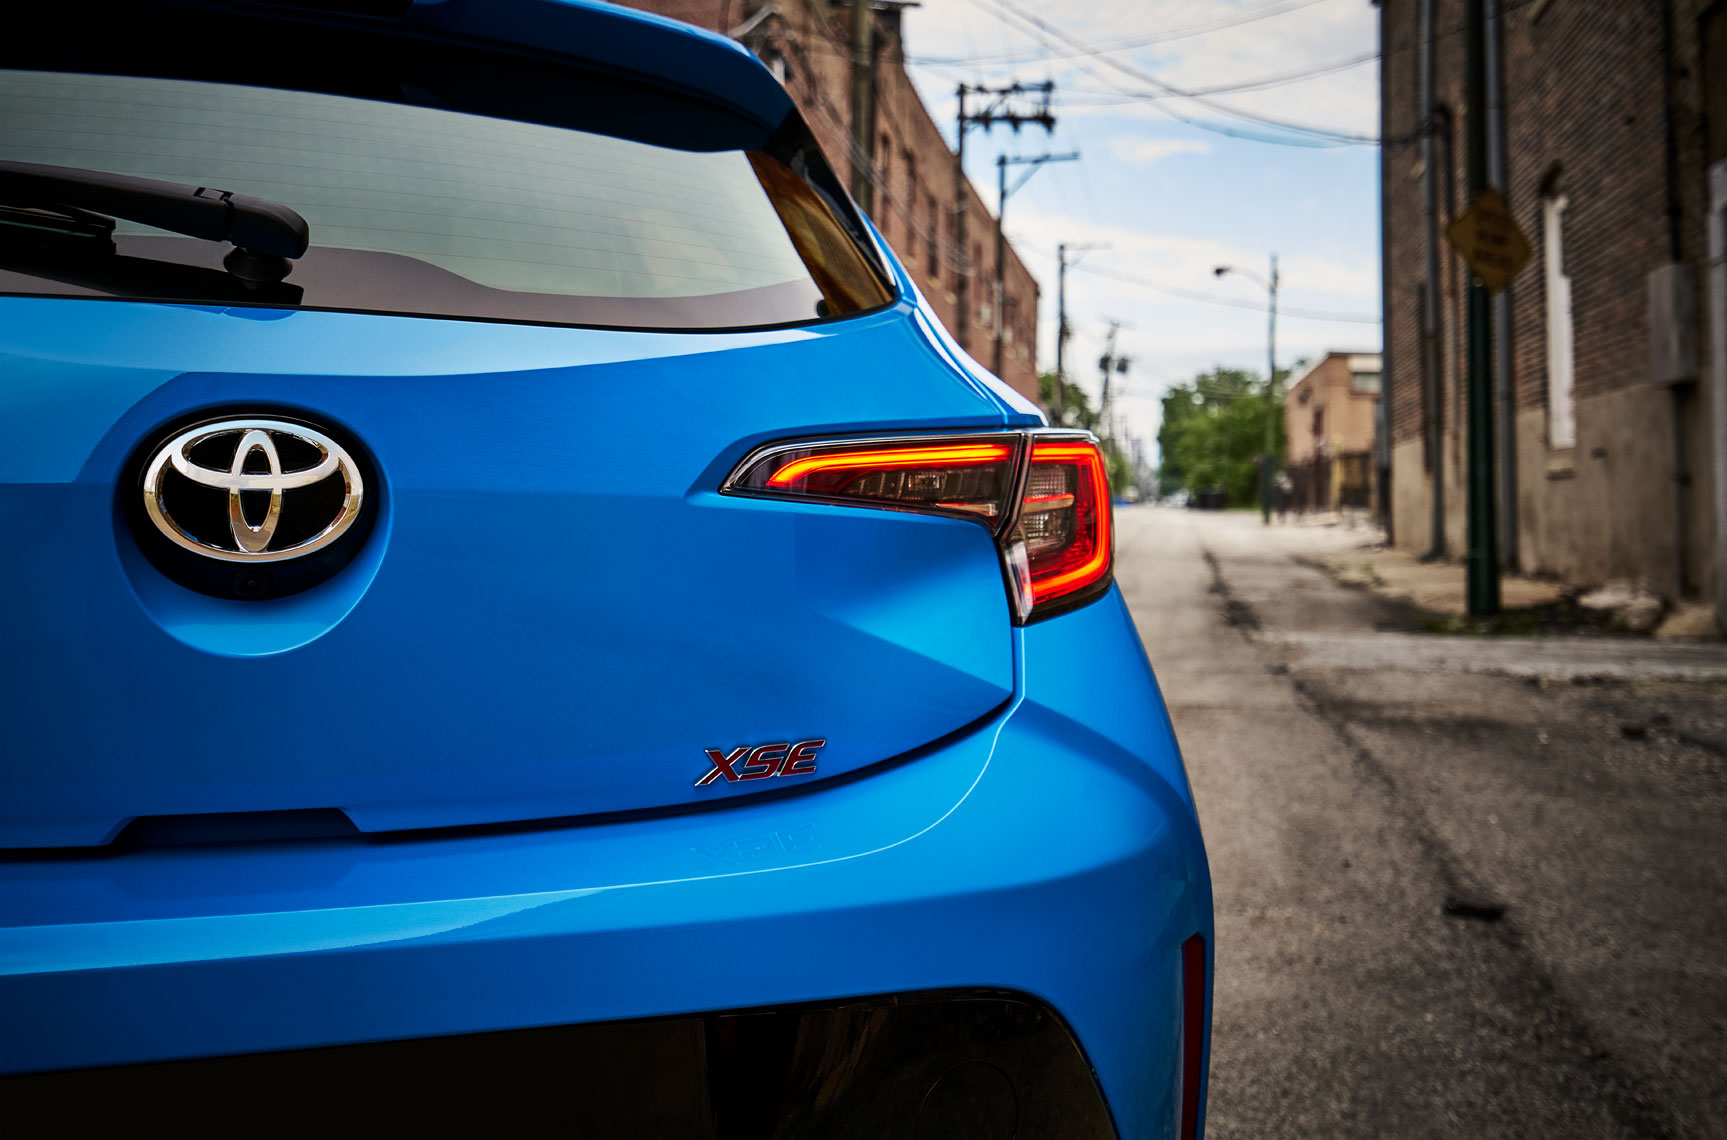 Location Photography Toyota Corolla XSE Rear Chicago Alley